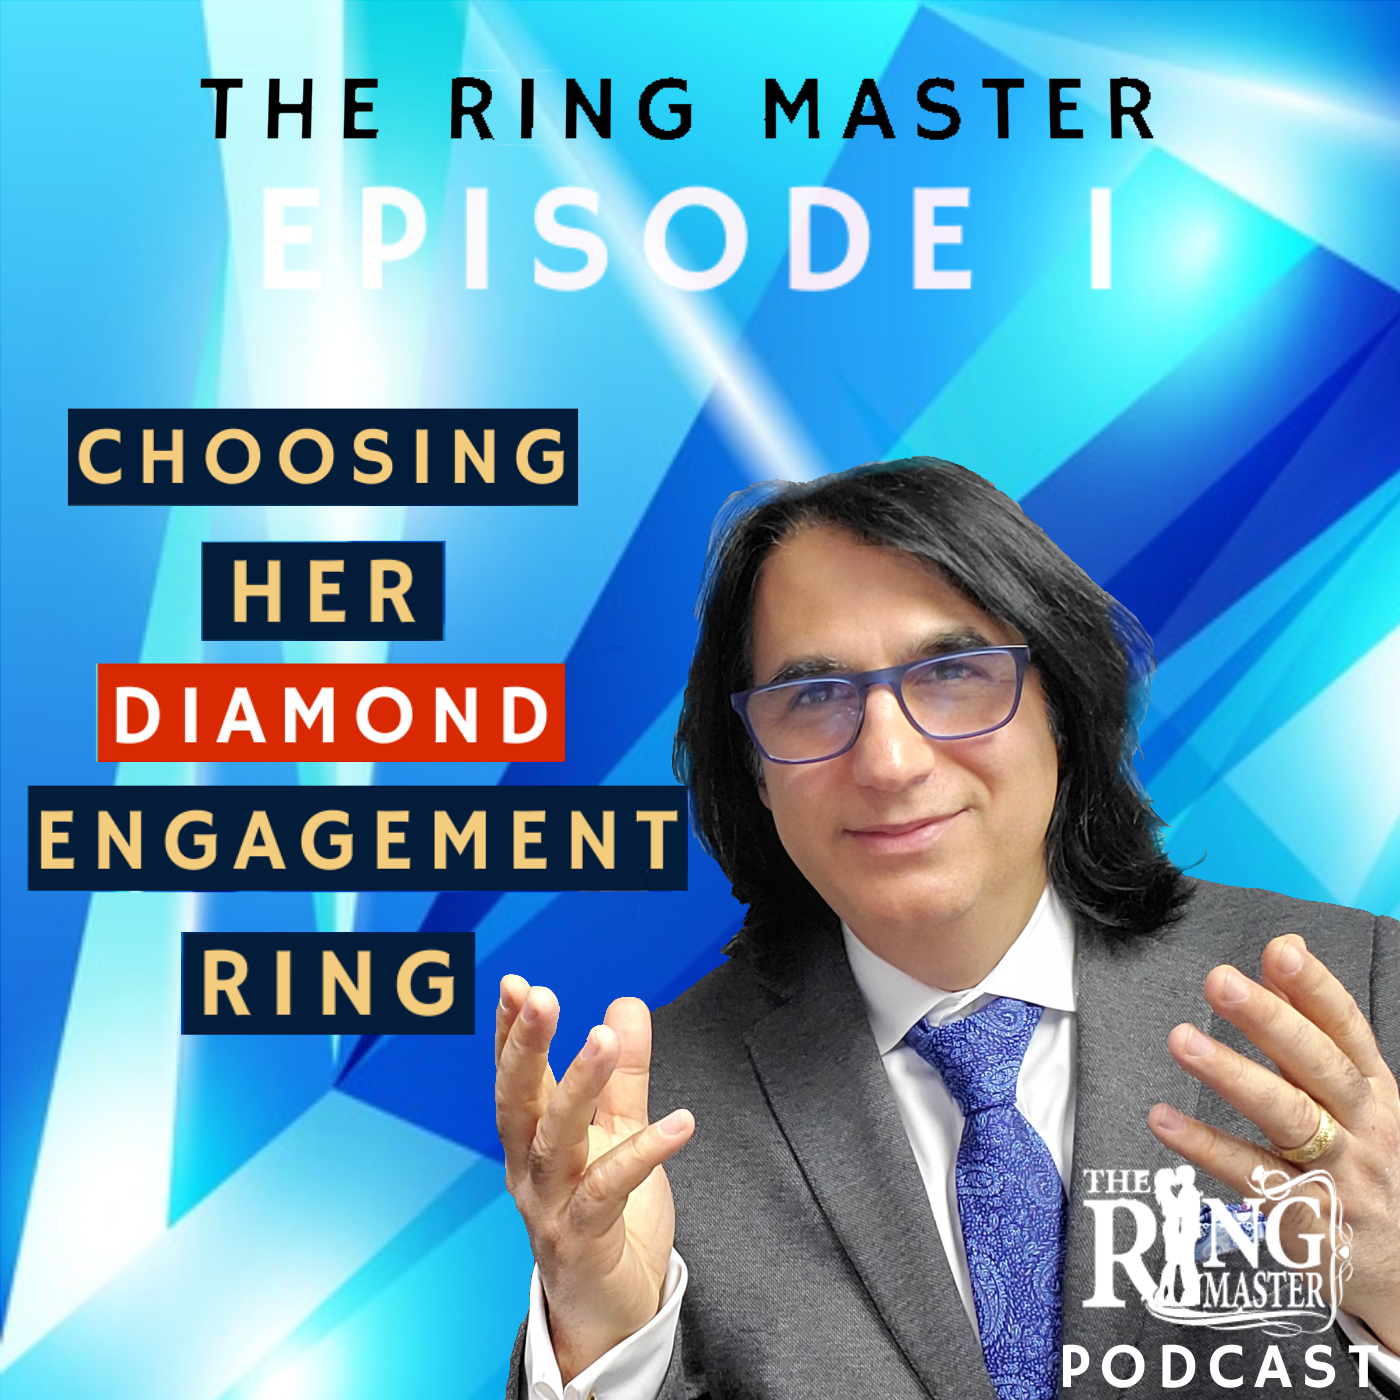 ring-master-podcast-episode-1-choosing-her-diamond-engagement-ring.png